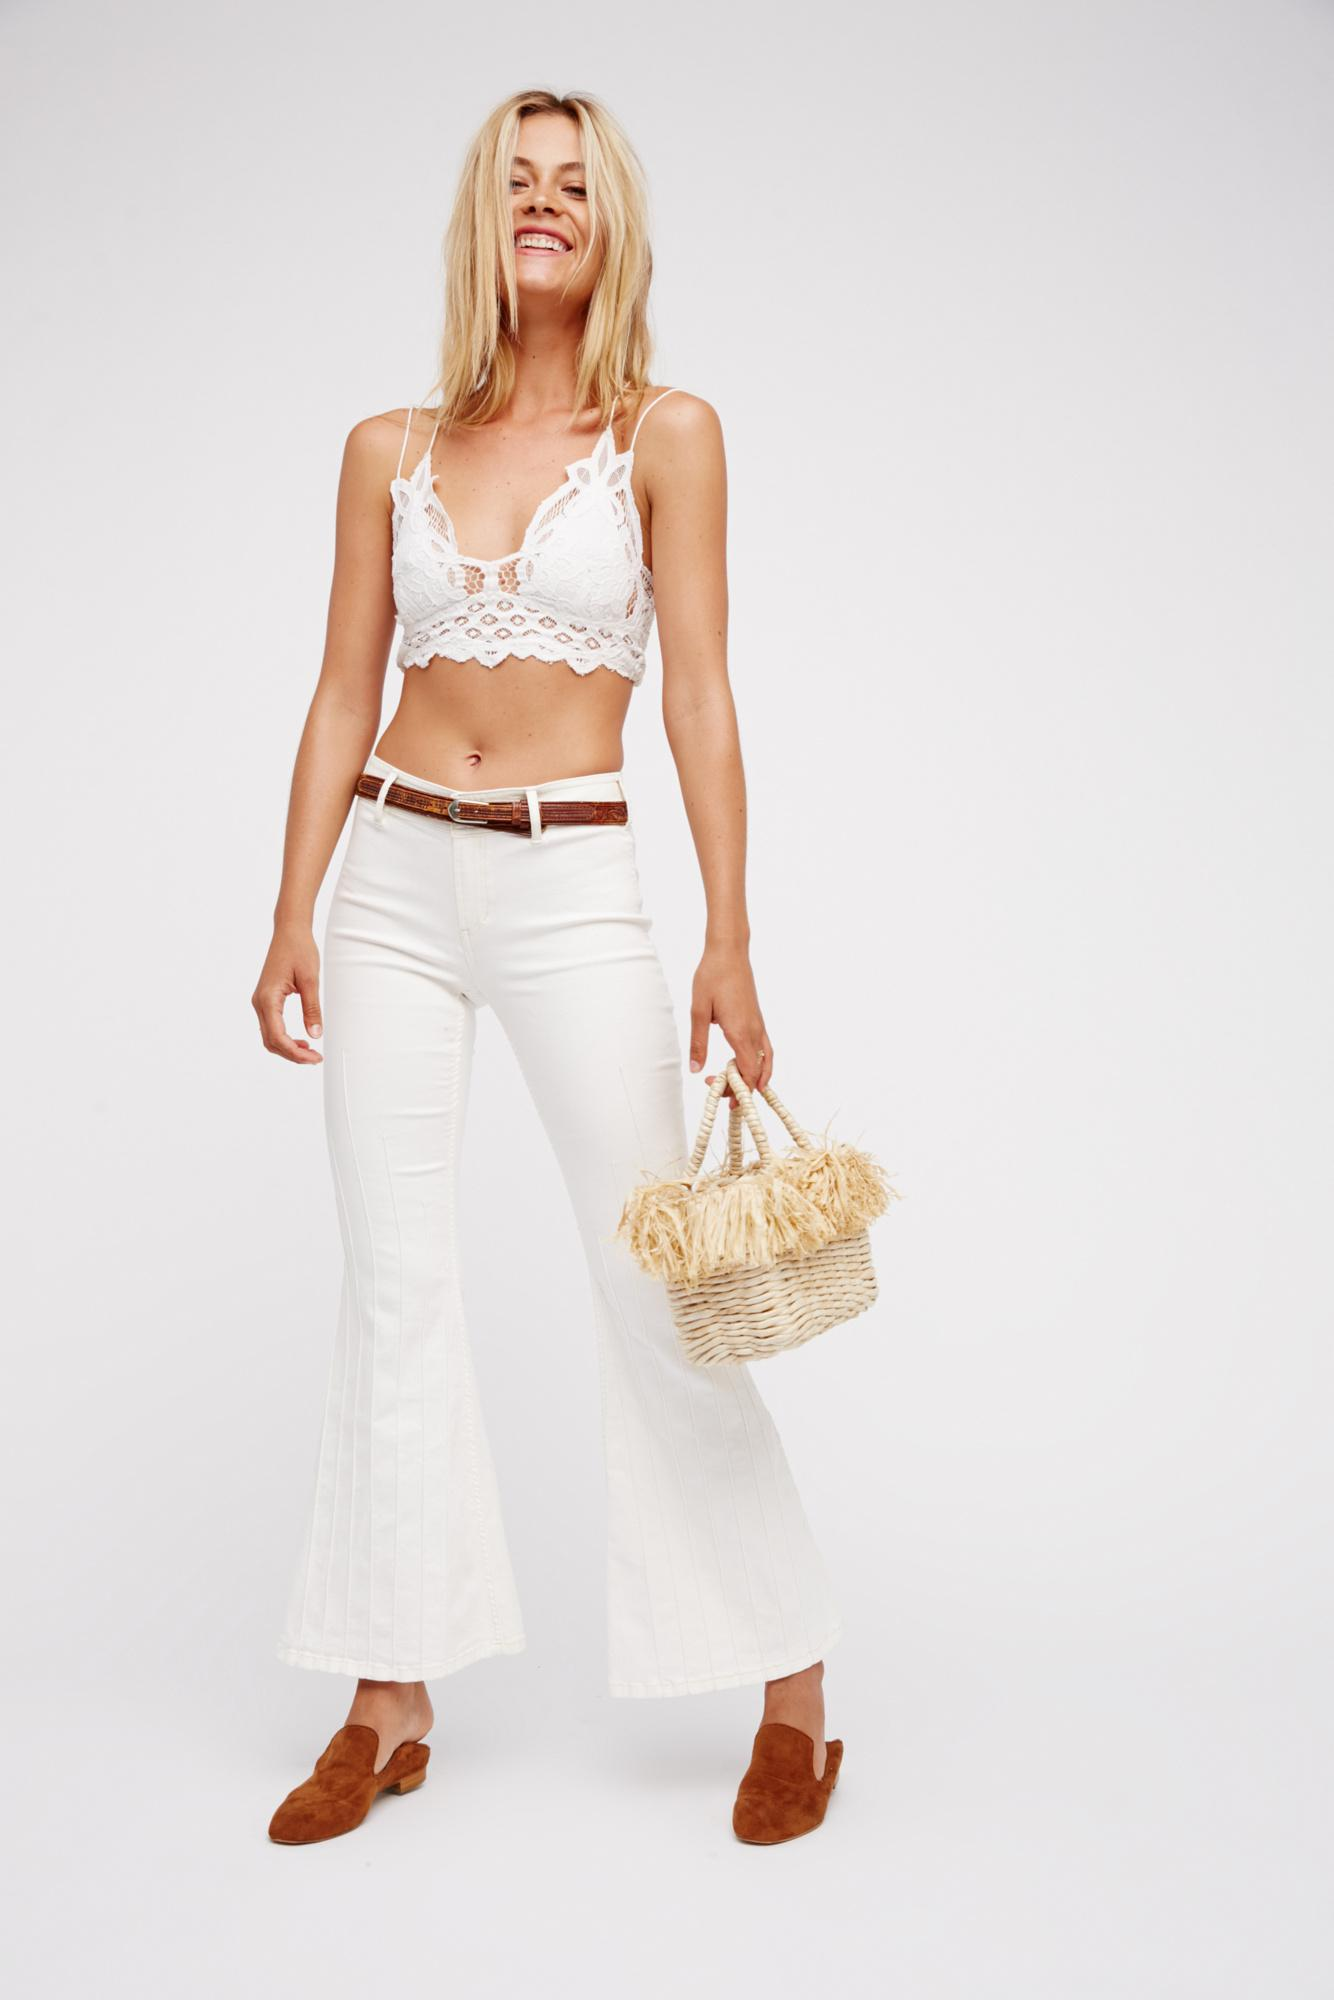 595061267a Free People - White Fp One Adella Bralette - Lyst. View fullscreen